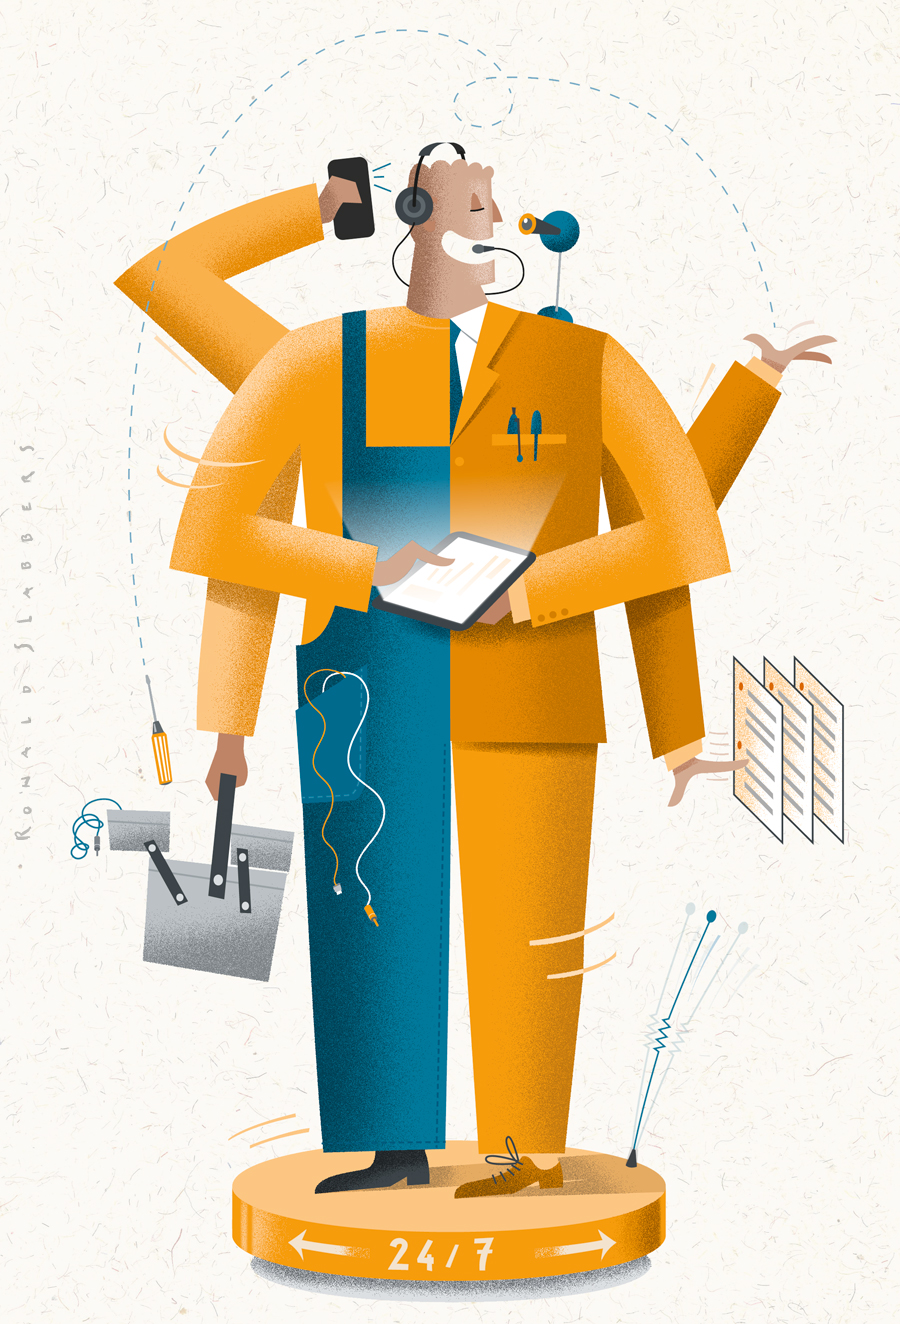 Illustration for Ziggo tv cable provider magazine depicting 24-7 service, half business man, half mechanic, repairman